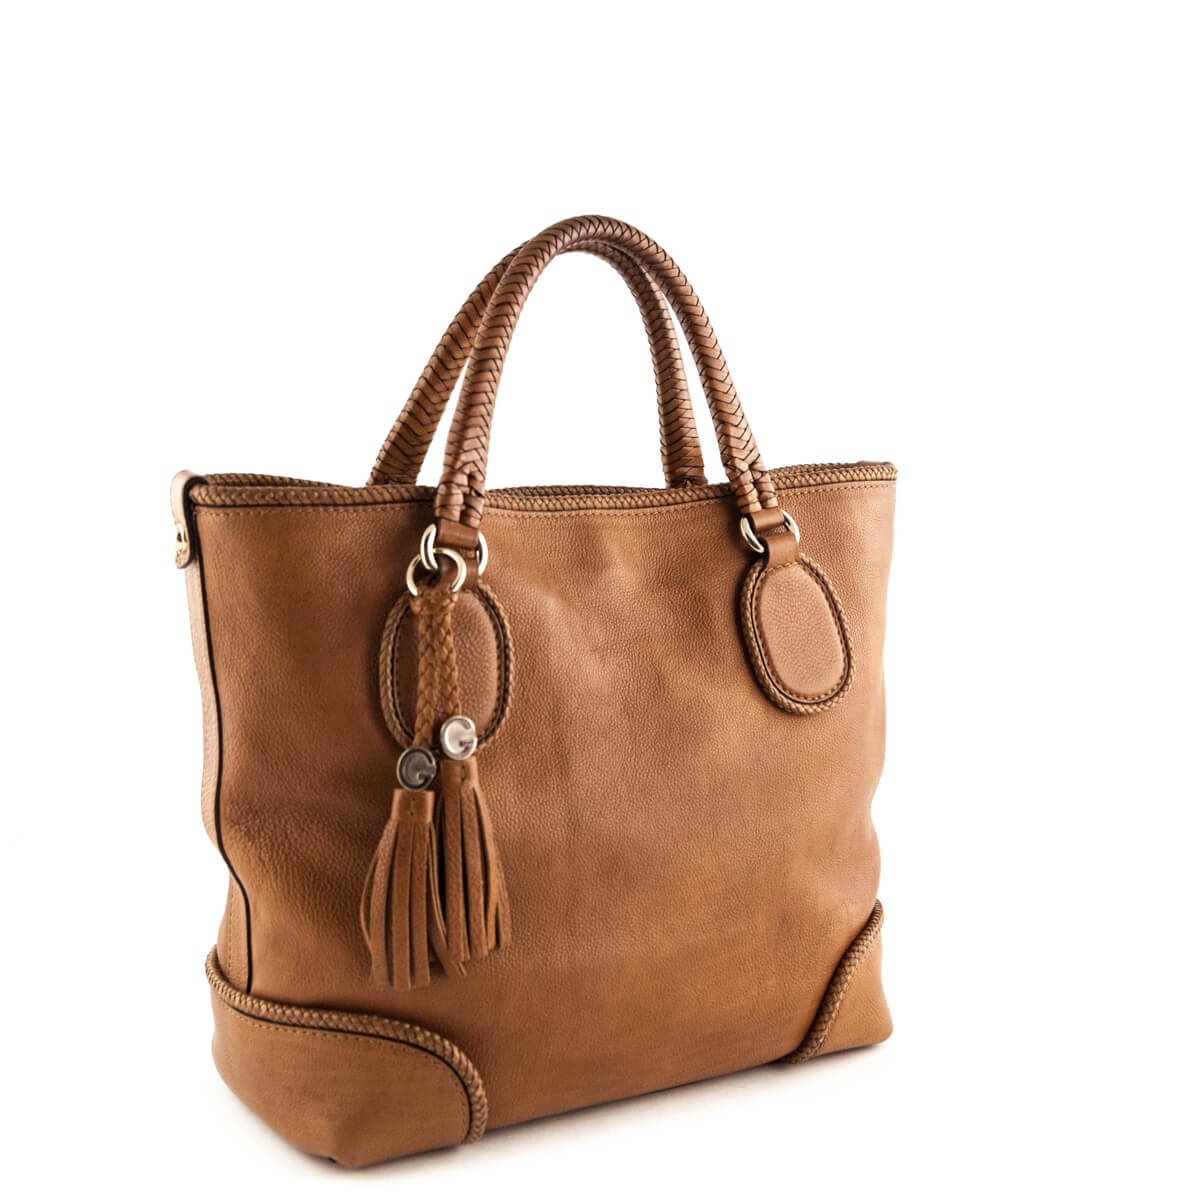 918064310132 ... Gucci Tan Leather Braided Tote - LOVE that BAG - Preowned Authentic  Designer Handbags ...